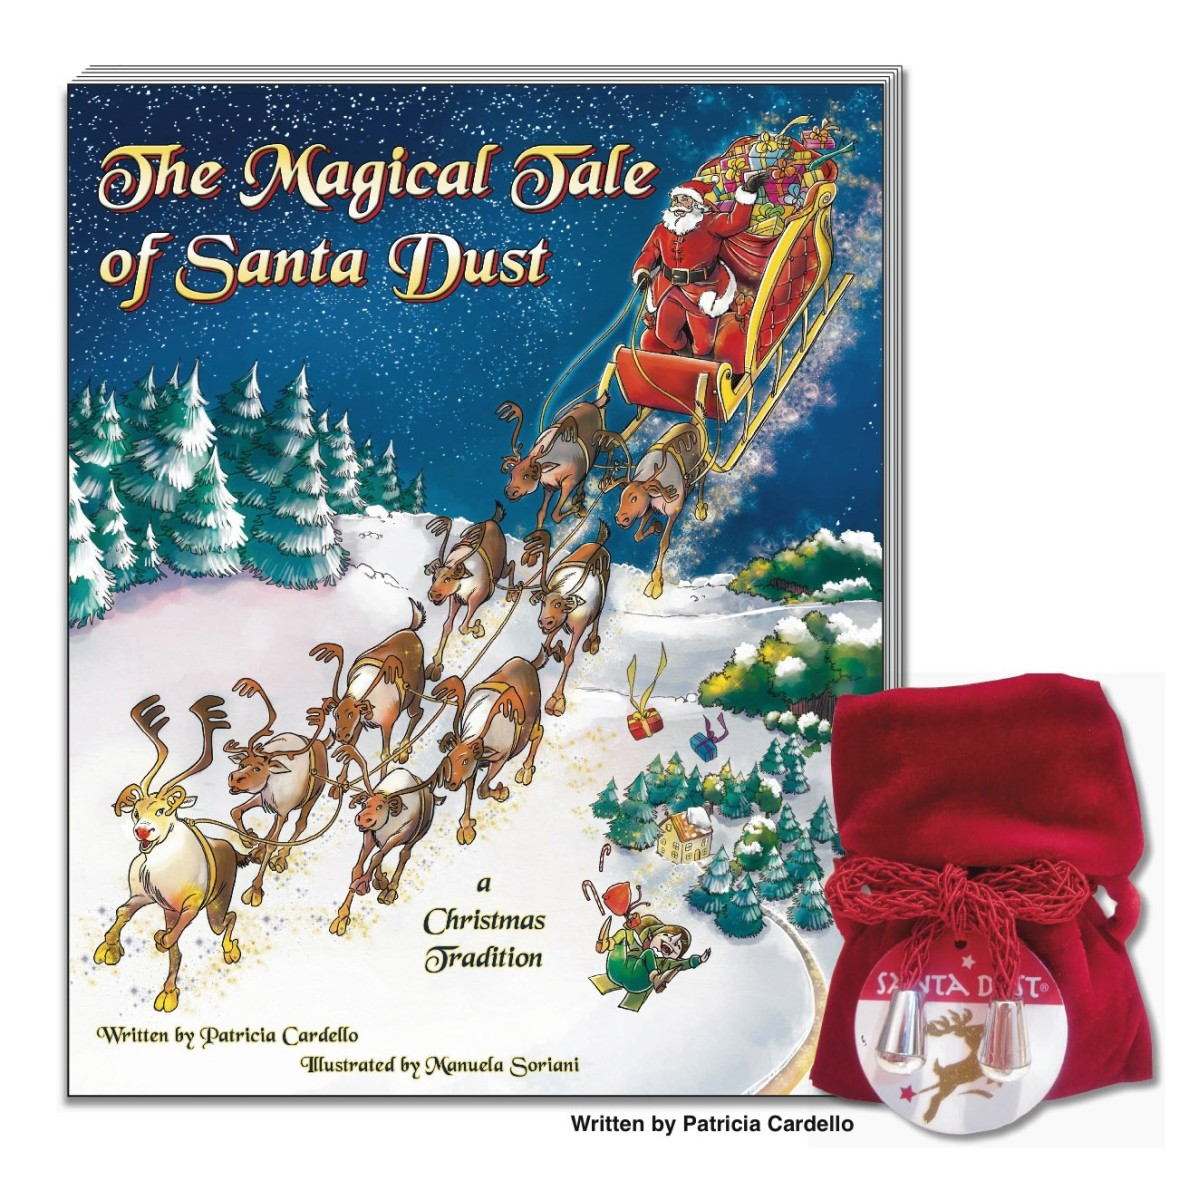 The Magical Tale of Santa Dust